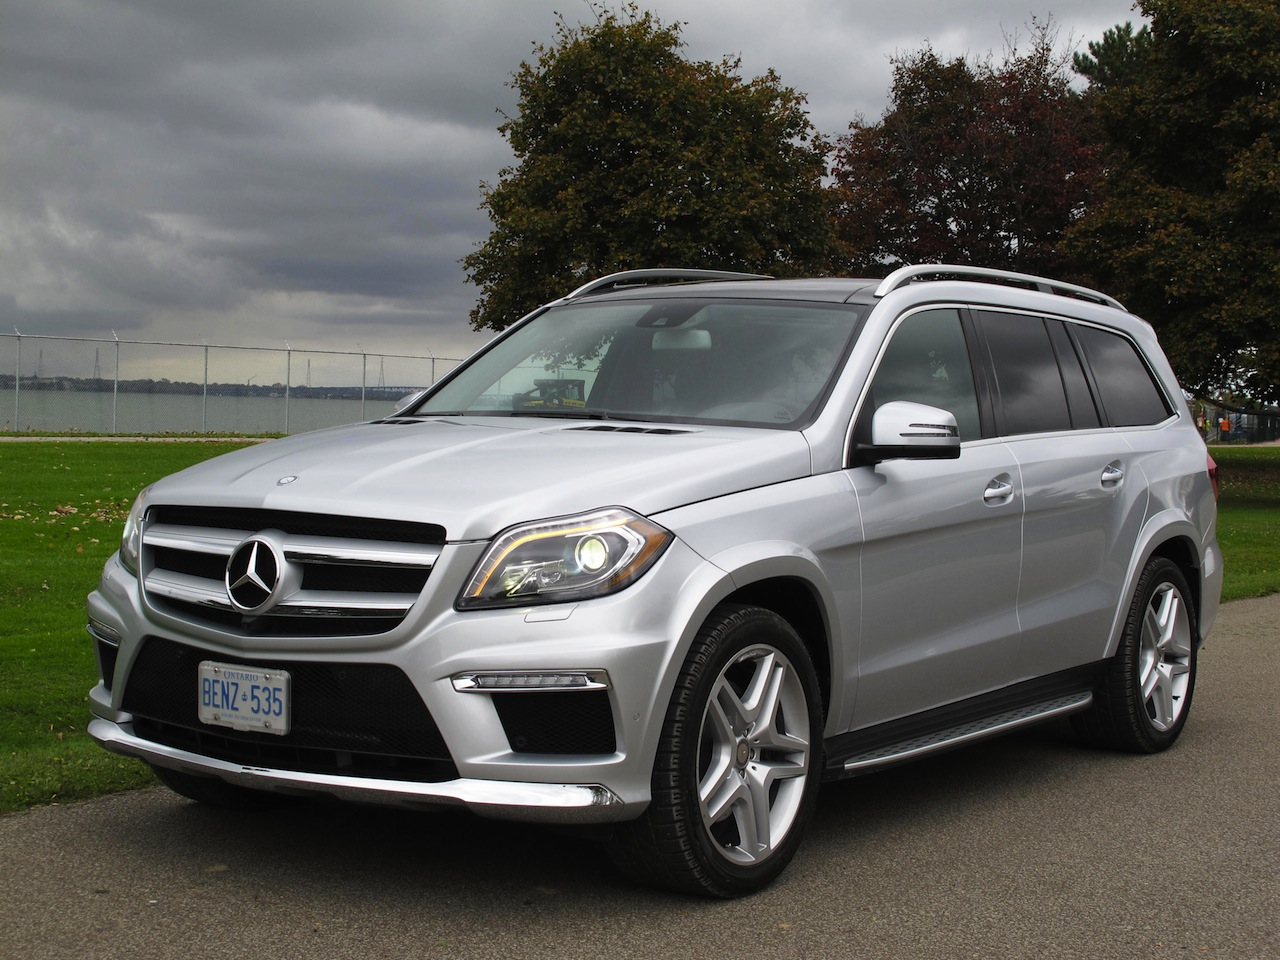 2014 Mercedes-Benz GL350 Bluetec Photo Gallery - Cars, Photos, Test Drives, and Reviews | Canadian Auto Review